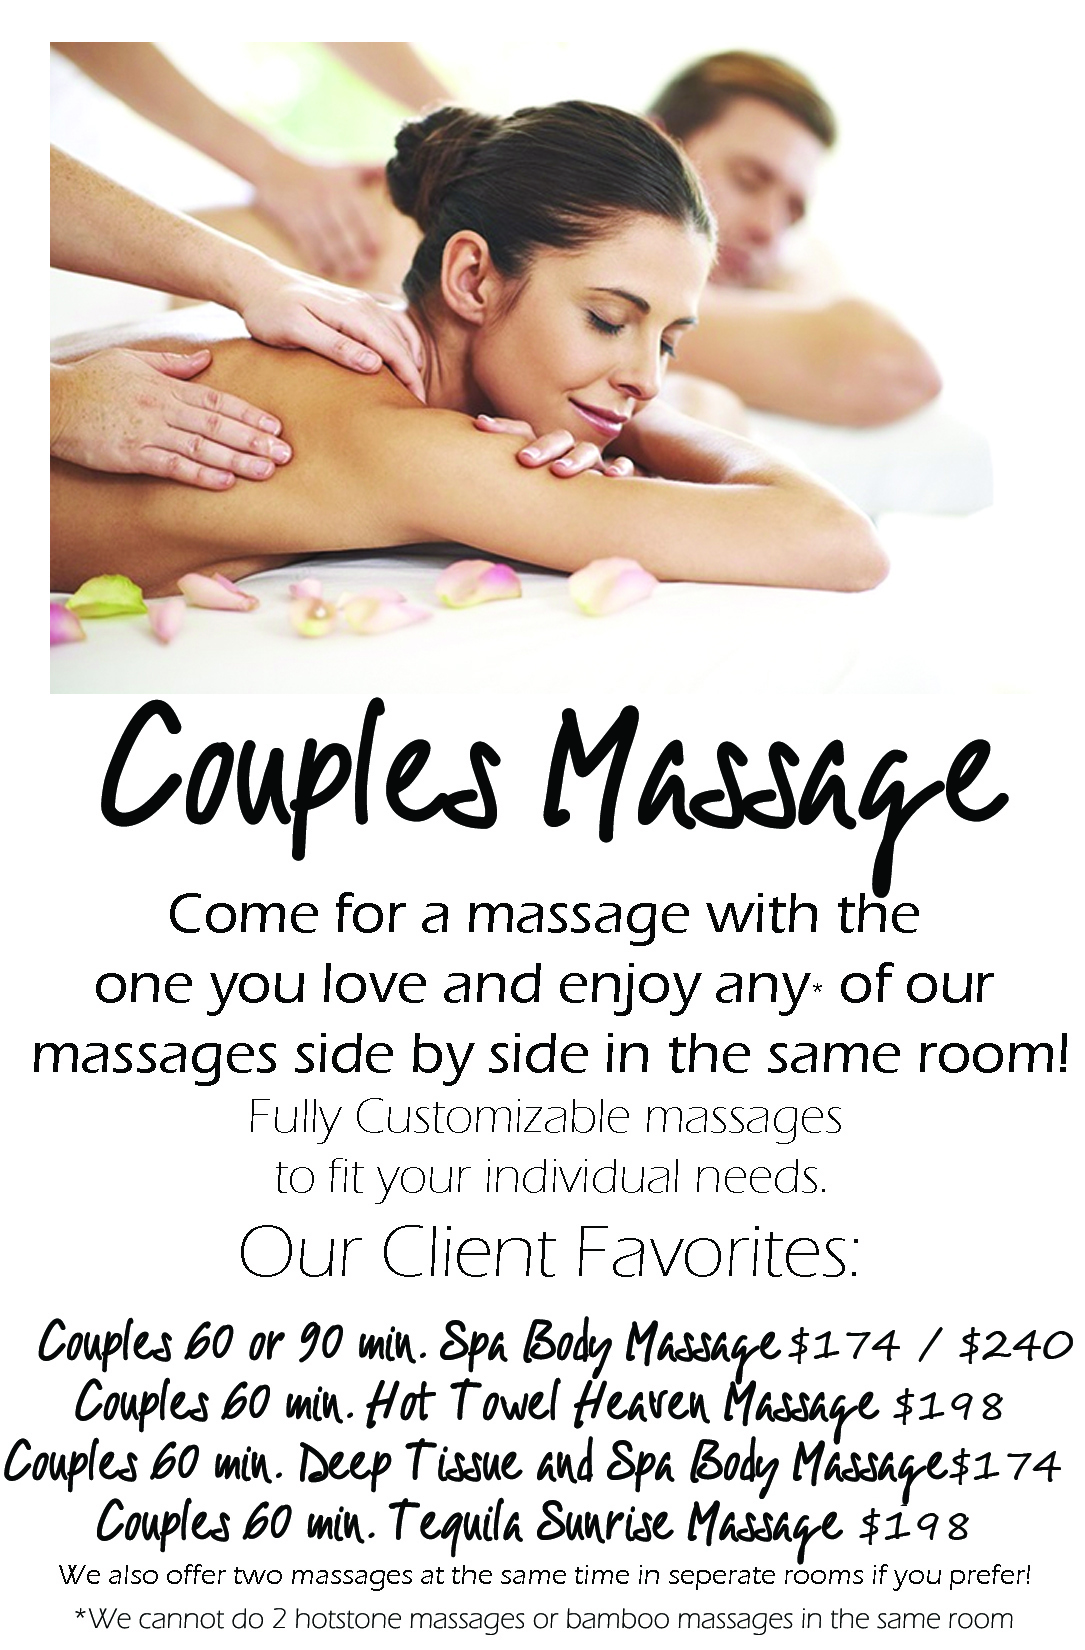 Massage services bristol ct